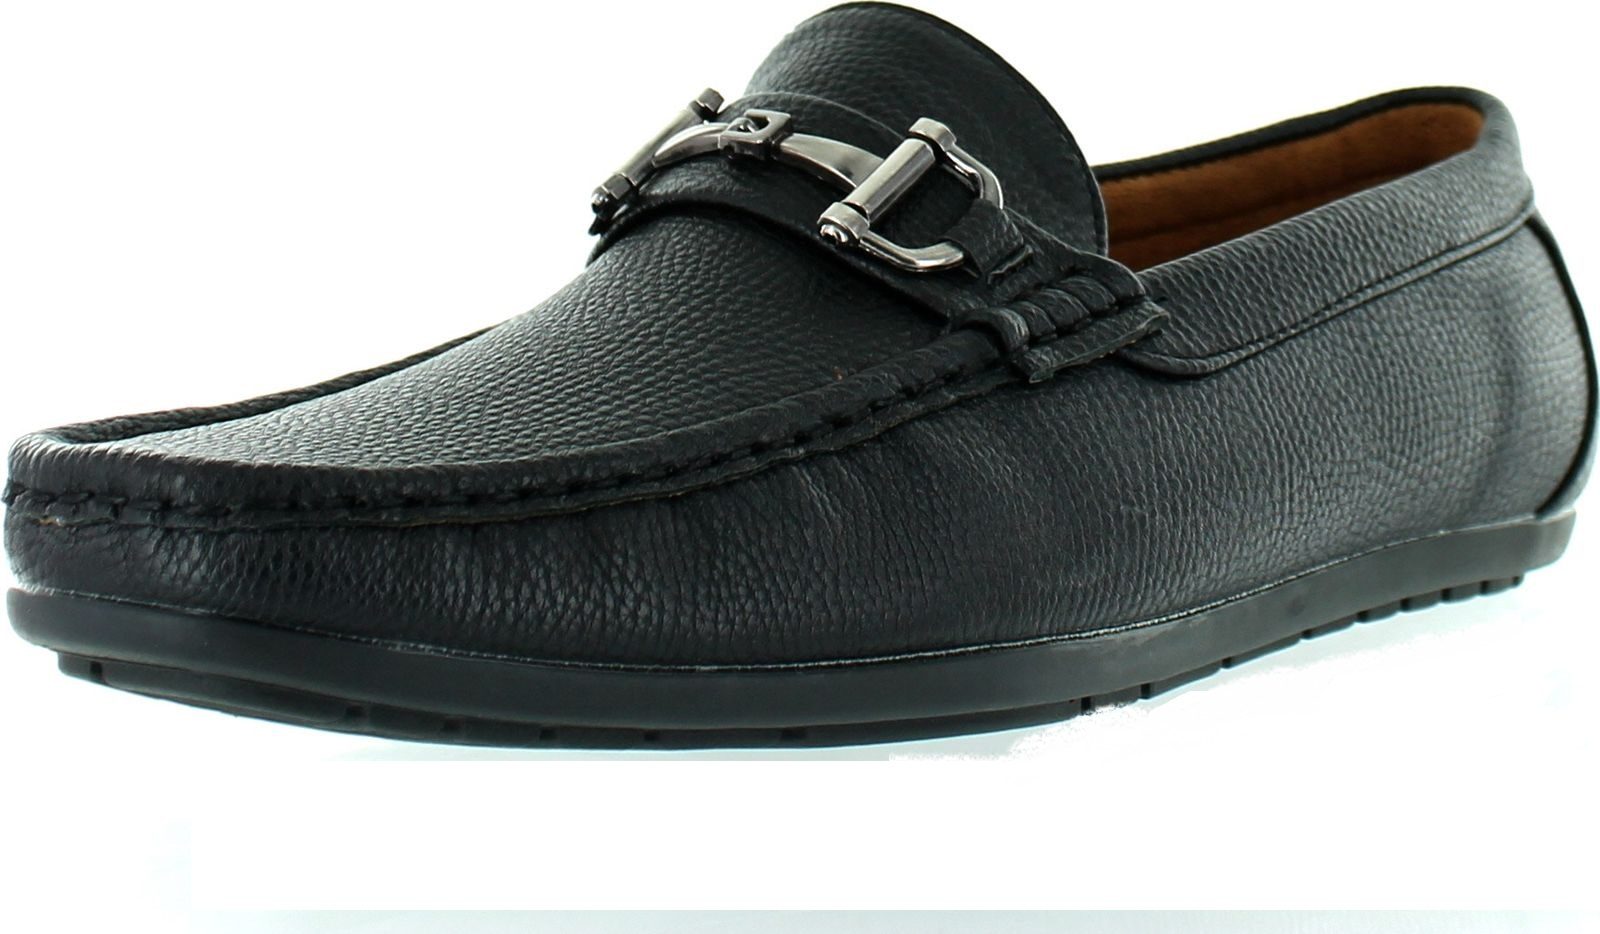 mens f41069 european style chain casual loafers